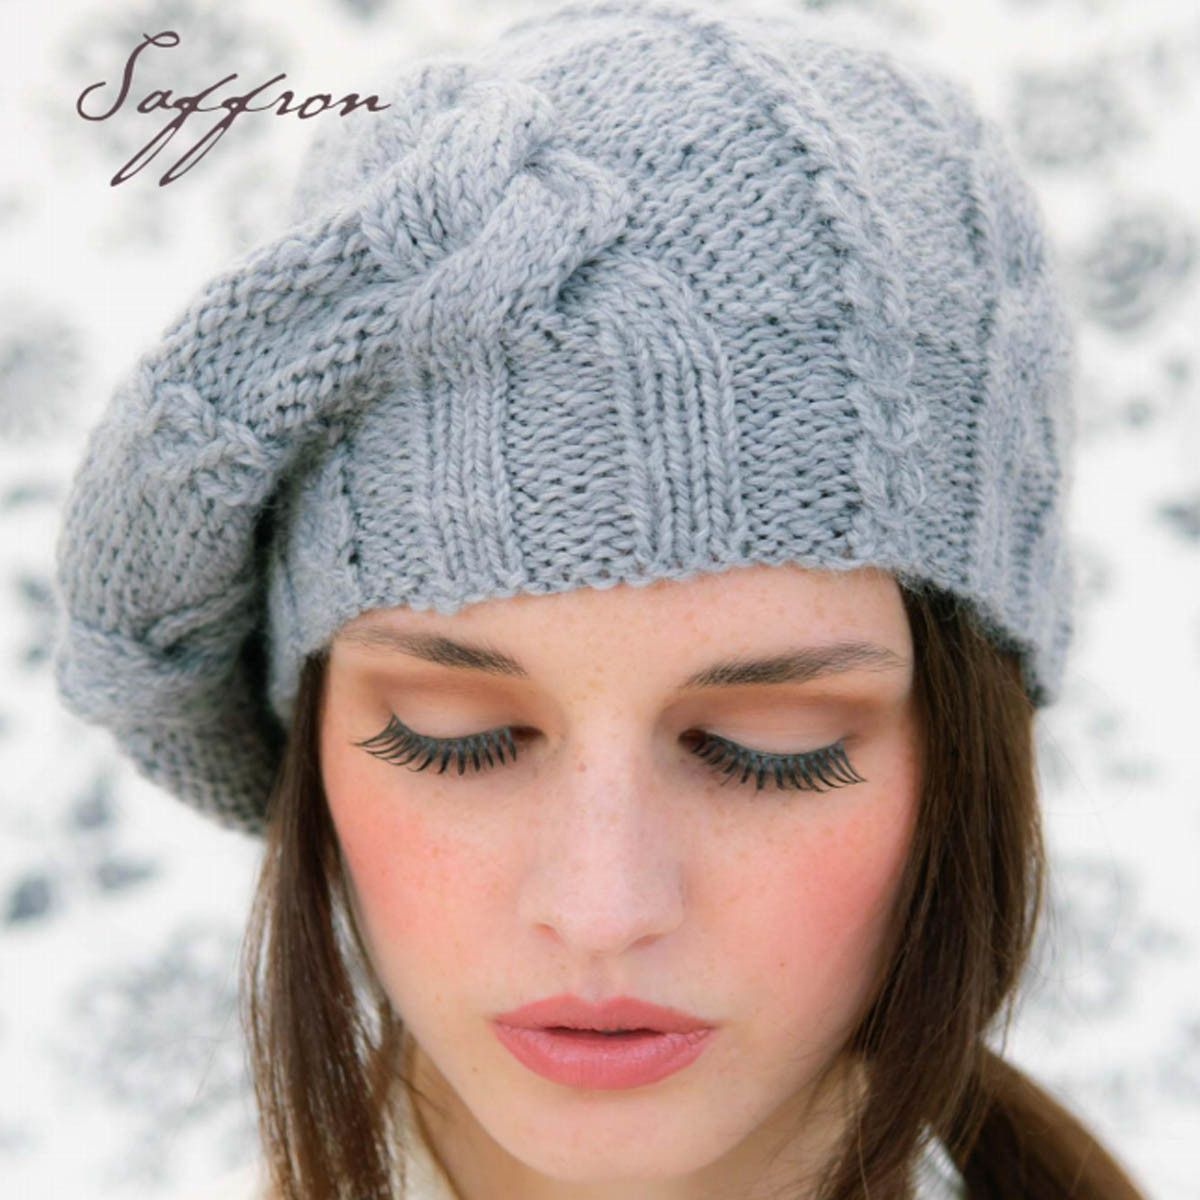 free knitted beret pattern | Knit | Pinterest | Beret, Patterns and ...